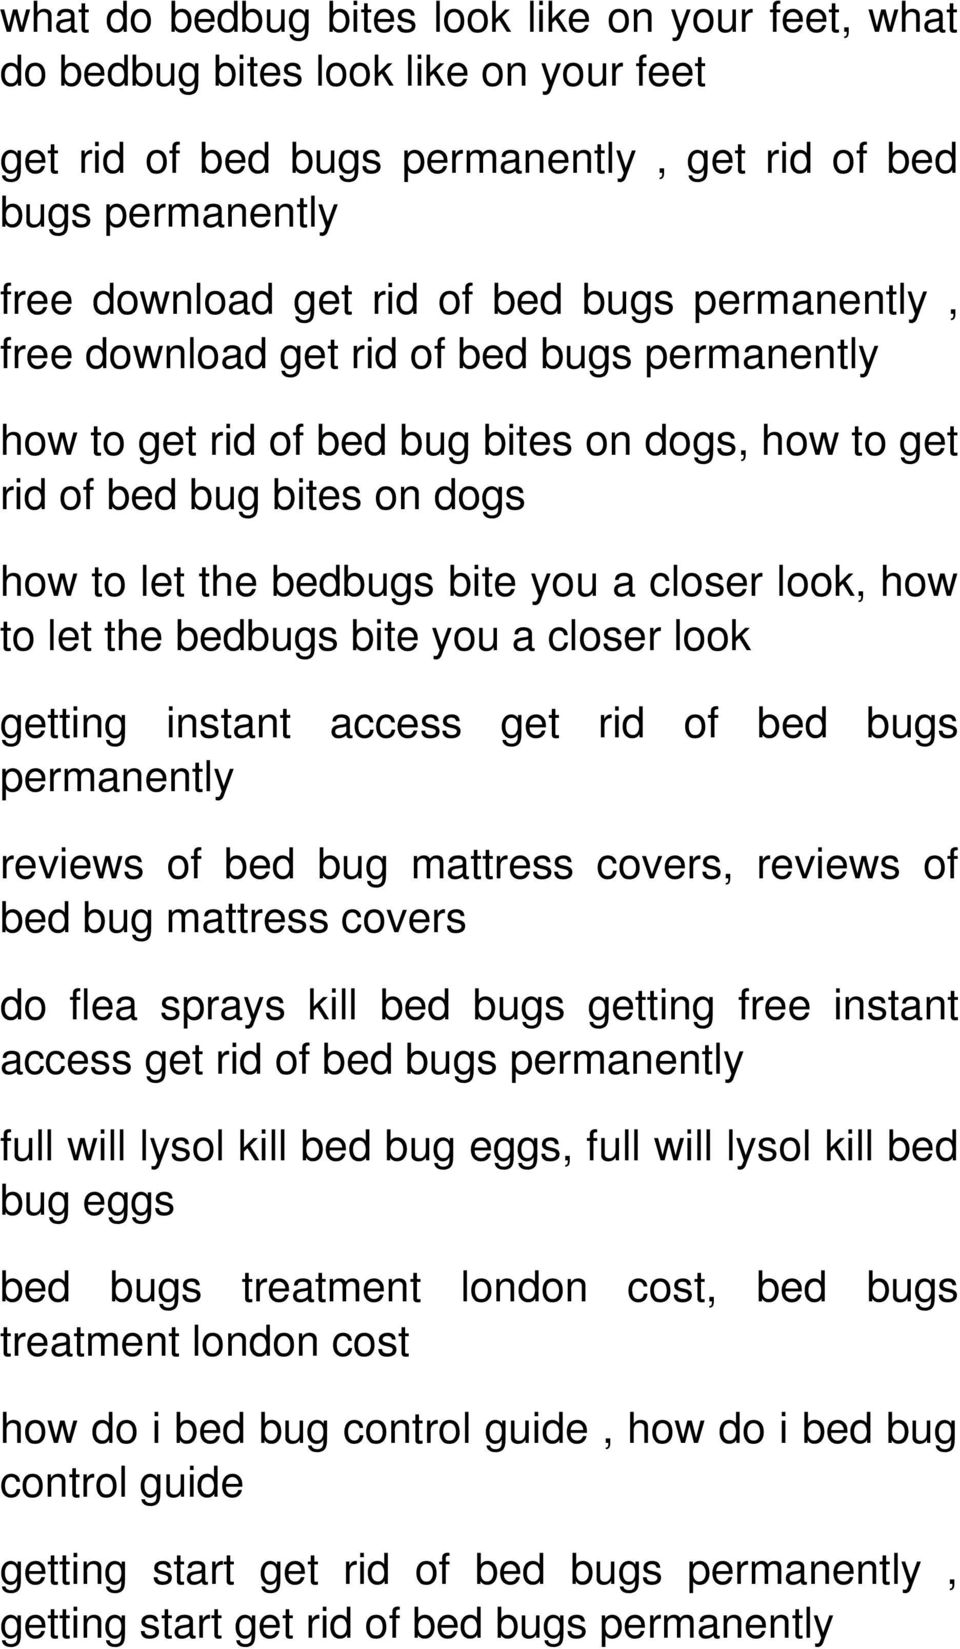 Delightful Permanently Reviews Of Bed Bug Mattress Covers, Reviews Of Bed Bug Mattress  Covers Do Flea